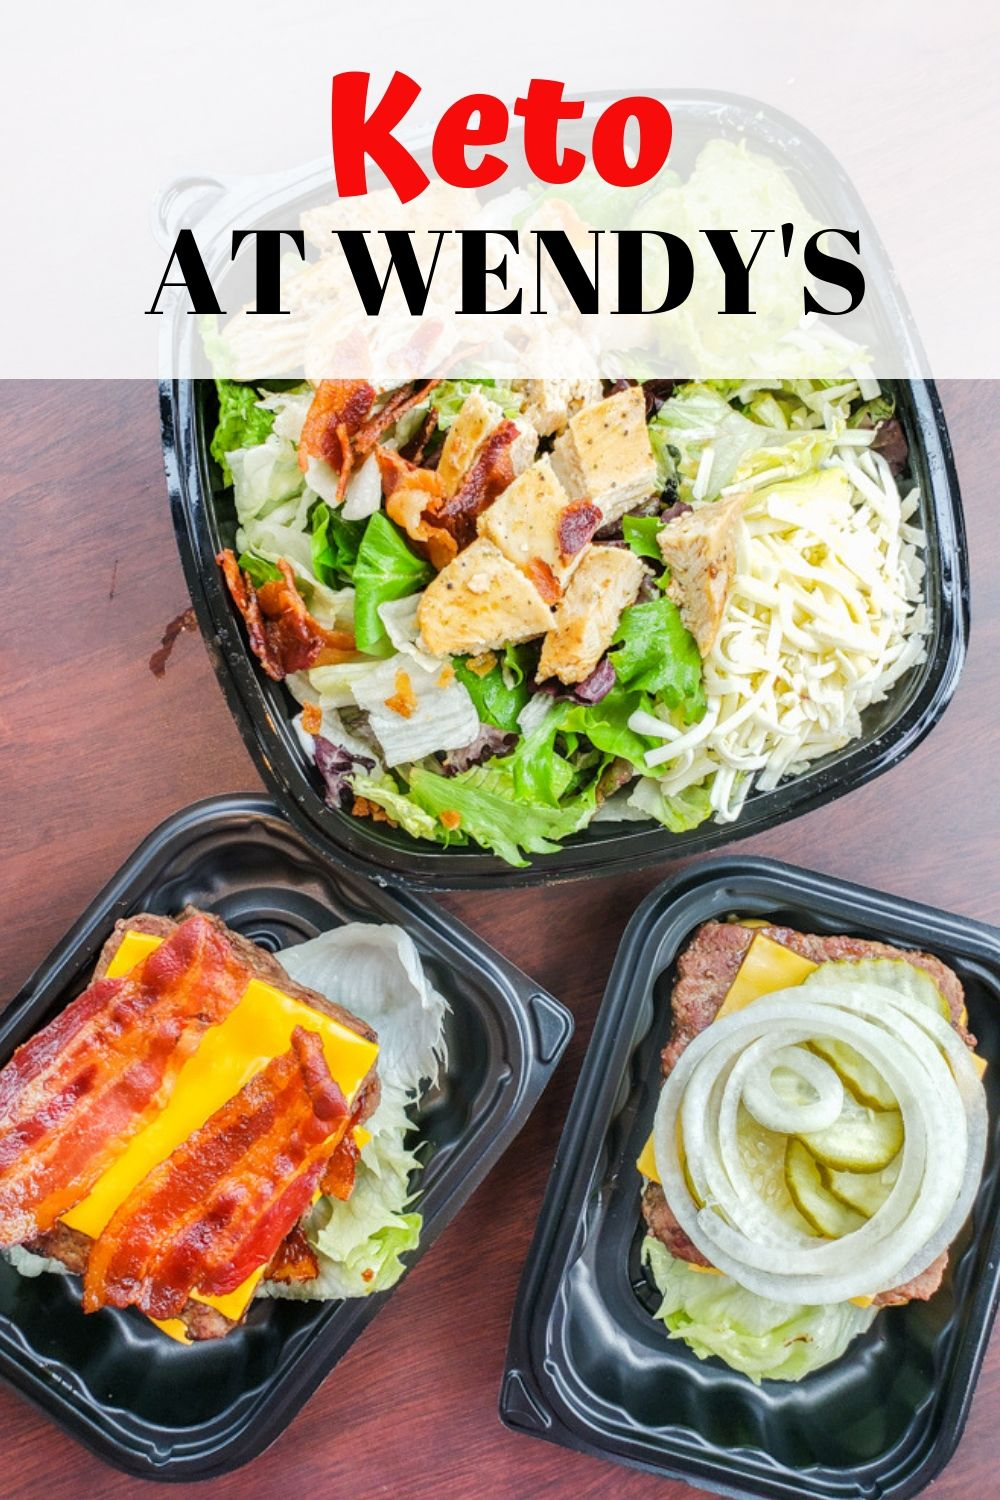 Wendy's Keto Options make staying keto on the go easy! They have delicious burgers that are made from 100% beef, yummy salads that actually fill you up, and of course BACON!